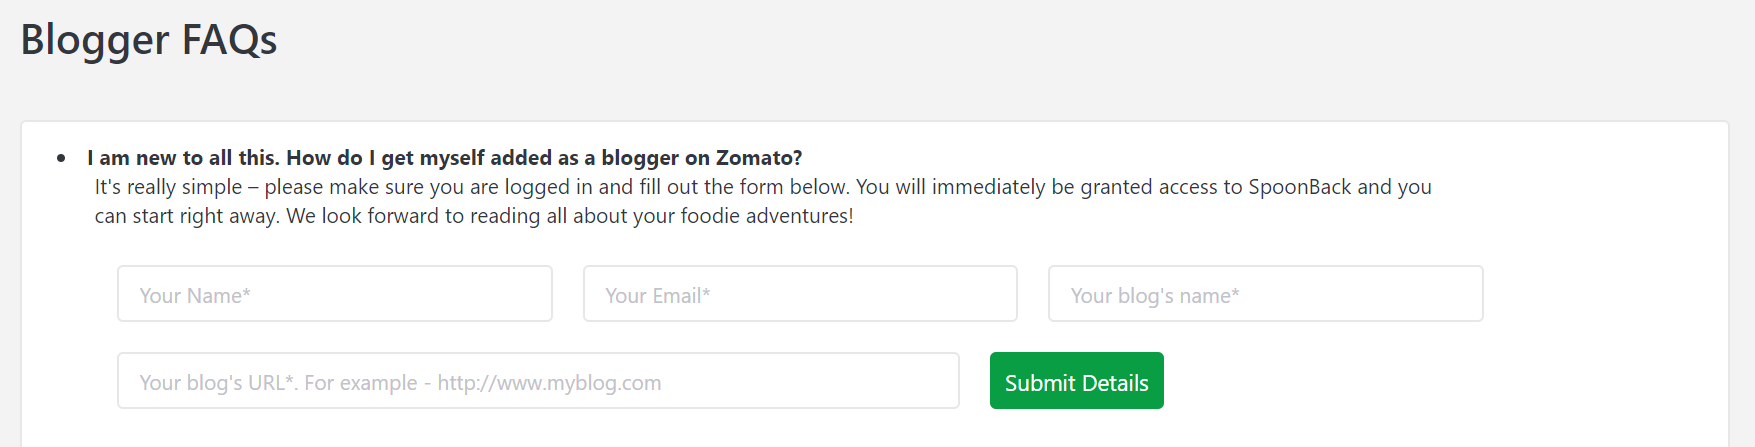 register as a blogger on zomato